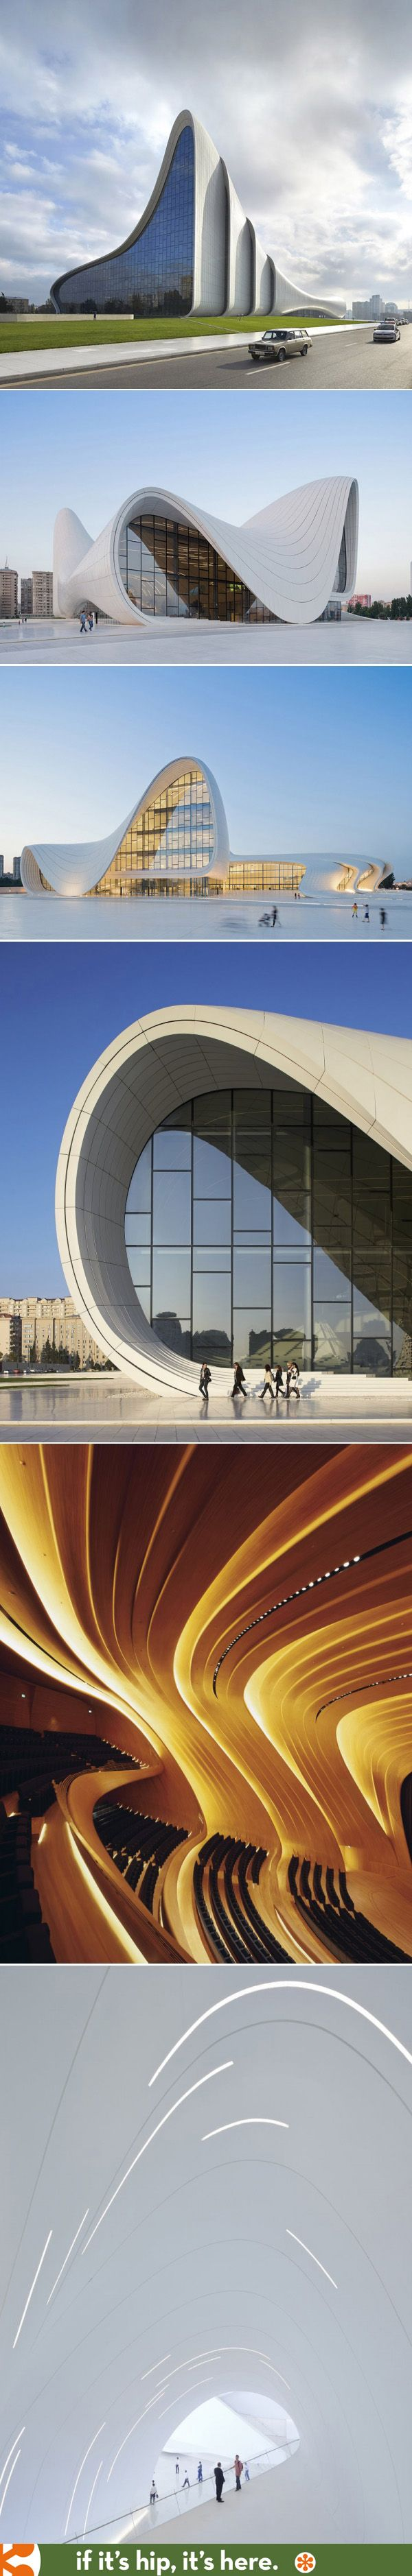 Zaha Hadid's Heydar Aliyev Centre wins 2014 Design Of The Year. With the alluring curves of the building and the interesting perspectives its wonder to how architecture keeps changing and becoming more complex. #architecture #curves #lighting